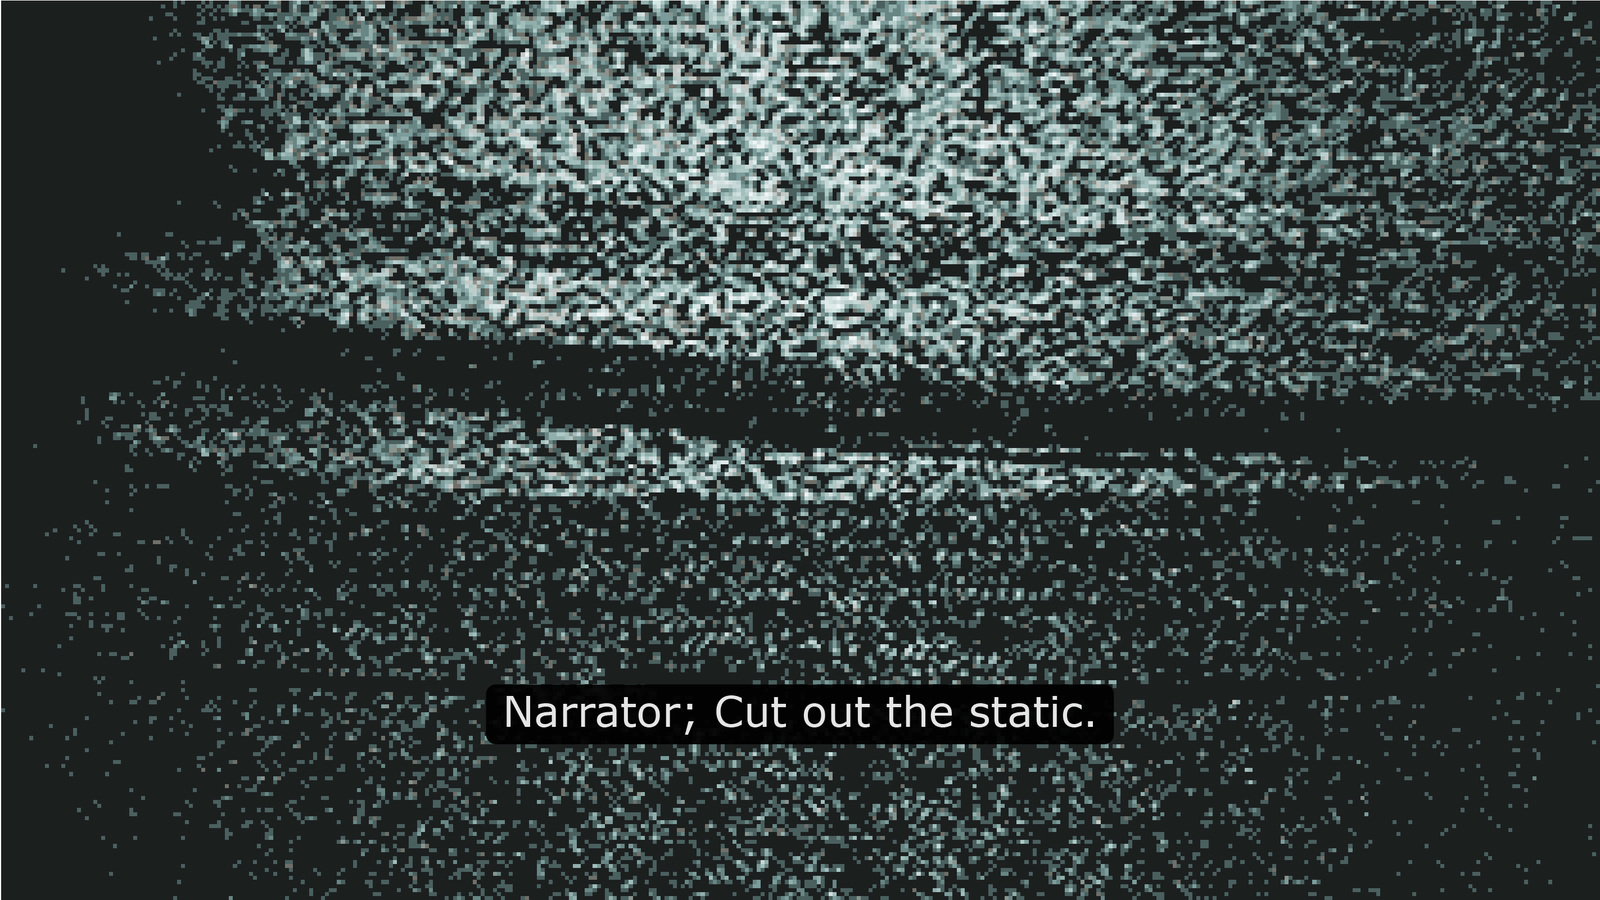 Cut Out the Static